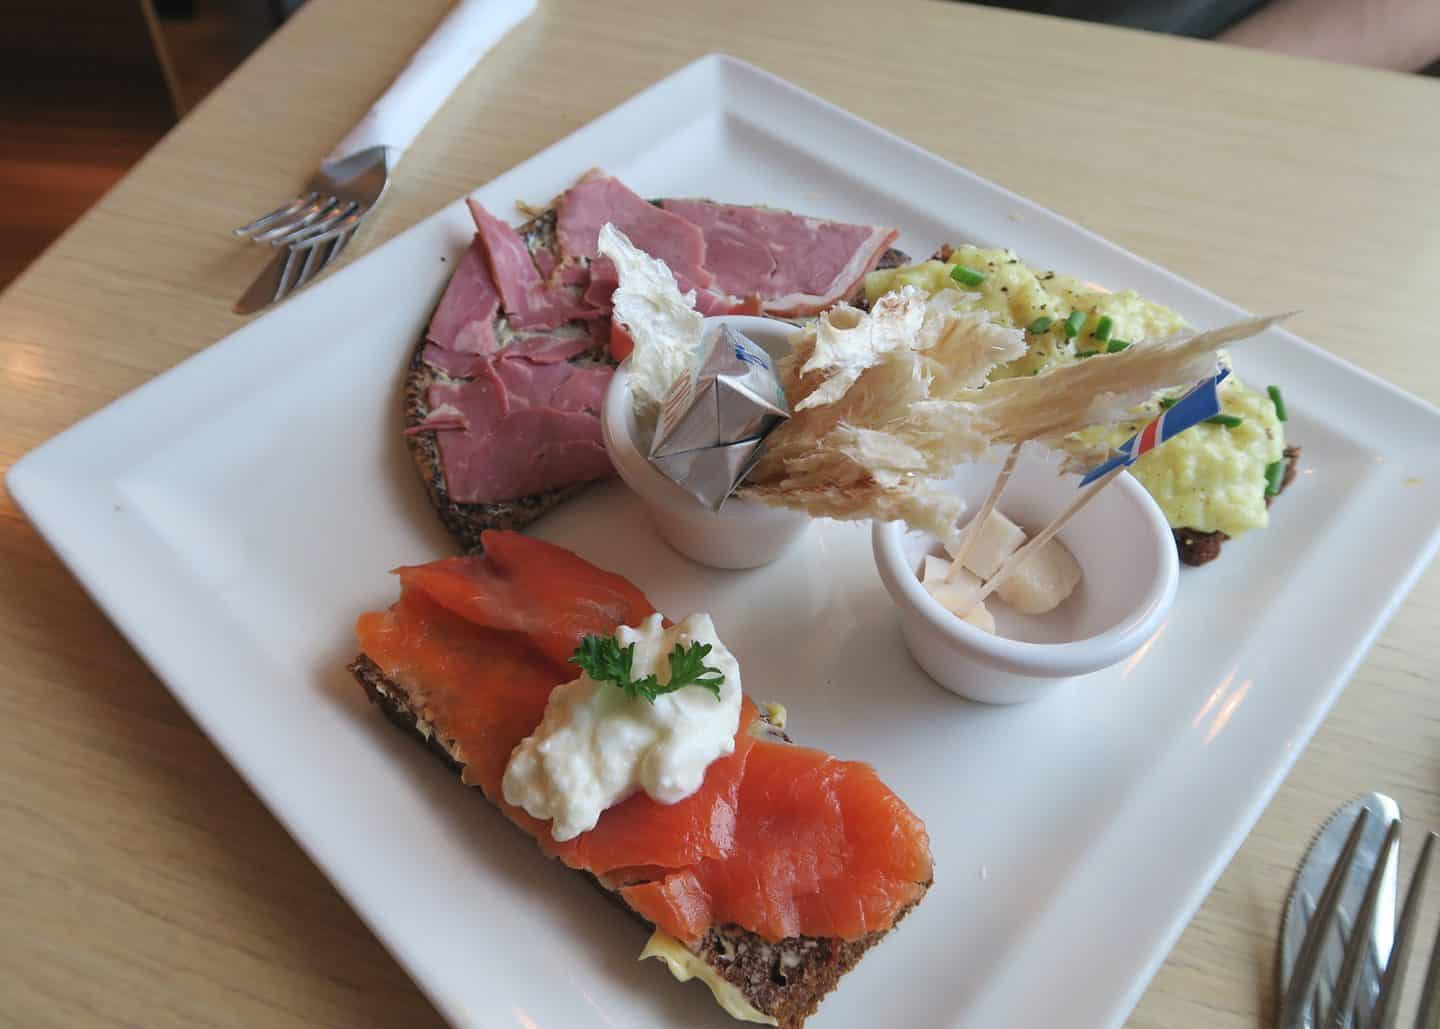 Café Loki is one of the best restaurants to visit in Reykjavik, Iceland